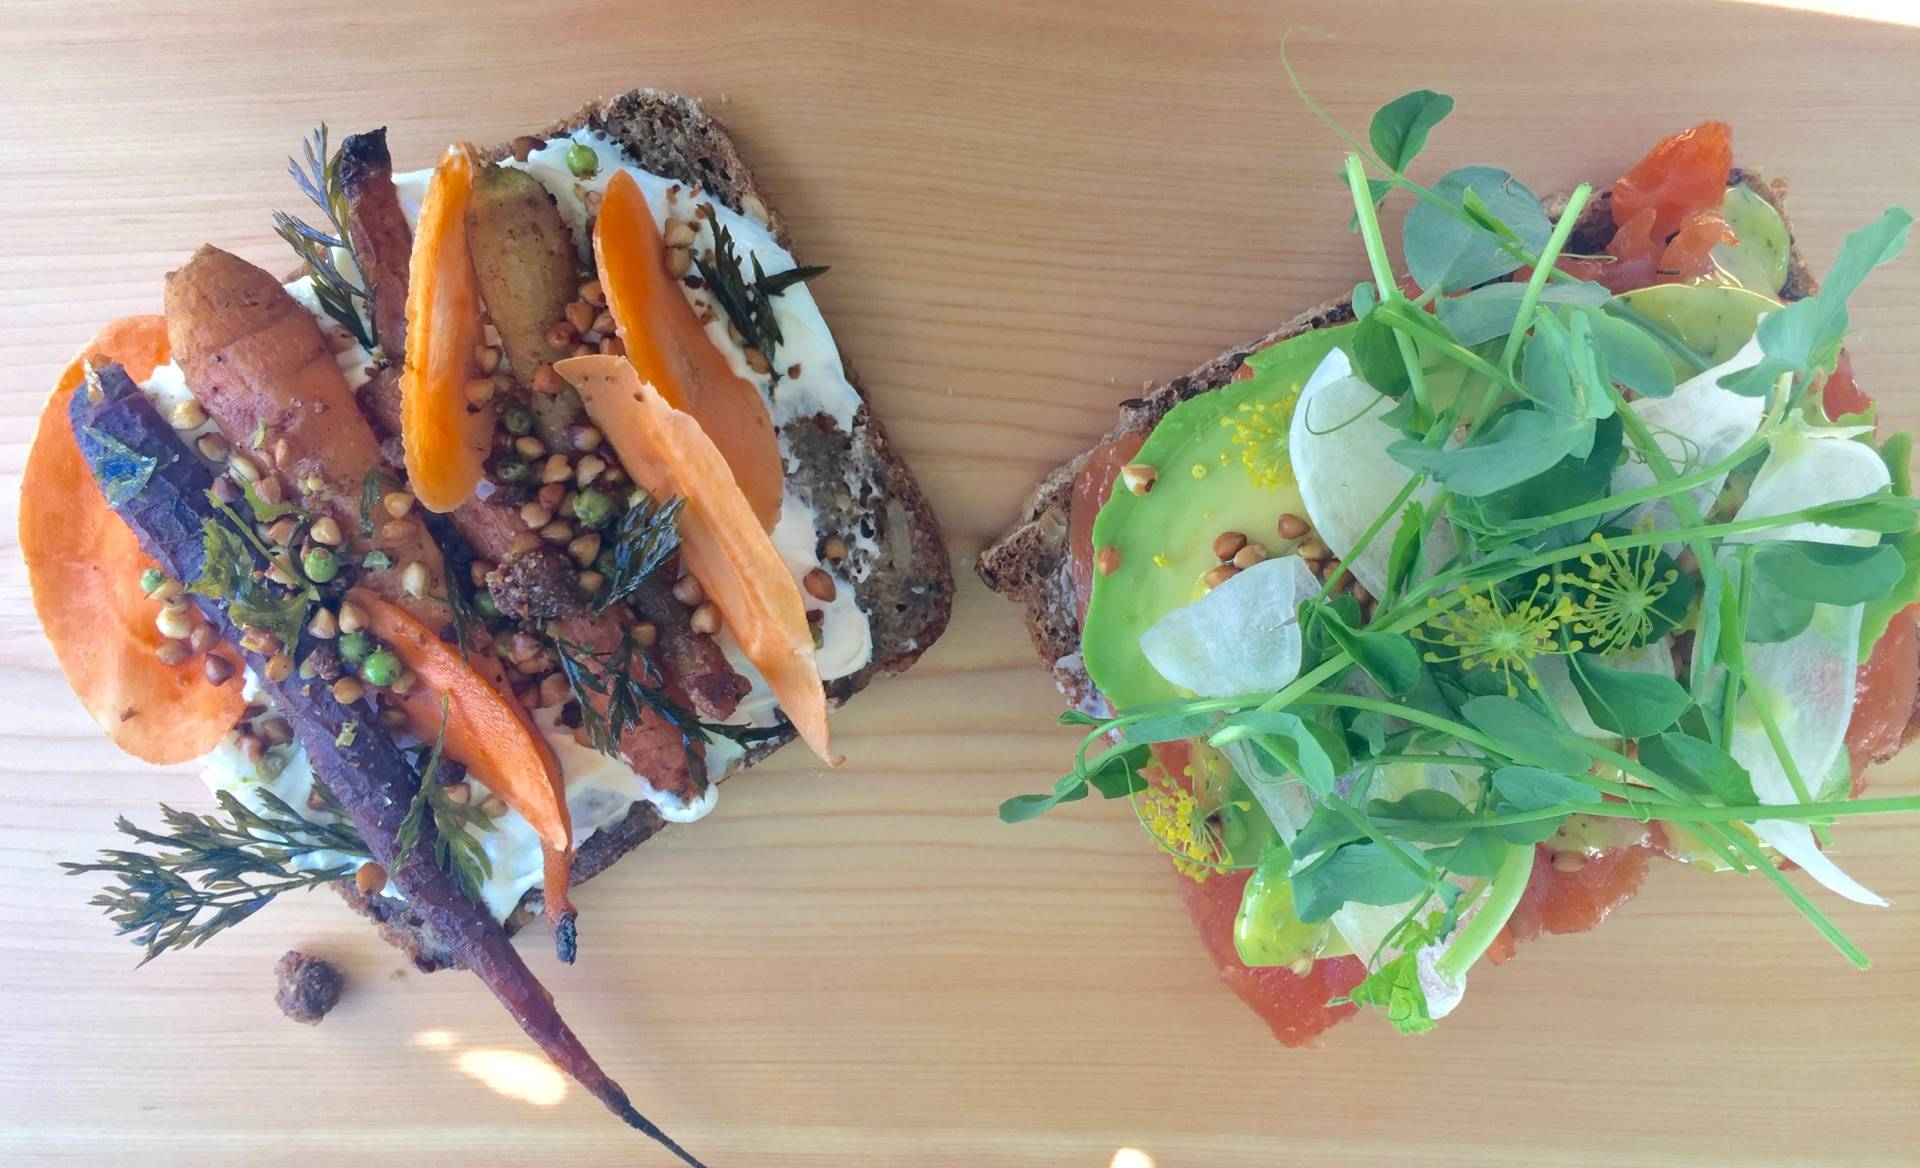 (L) Roasted pomegranate-cured carrots, toasted buckwheat, tahini and lebna, crispy carrot greens and (R) salmon, avocado, icicle radishes, micro greens, dill honey mustard, flowering fennel. Bothsmørrebrød sandwiches created by Kristen Rasmussen on her homemade rye bread. Anna Mindess